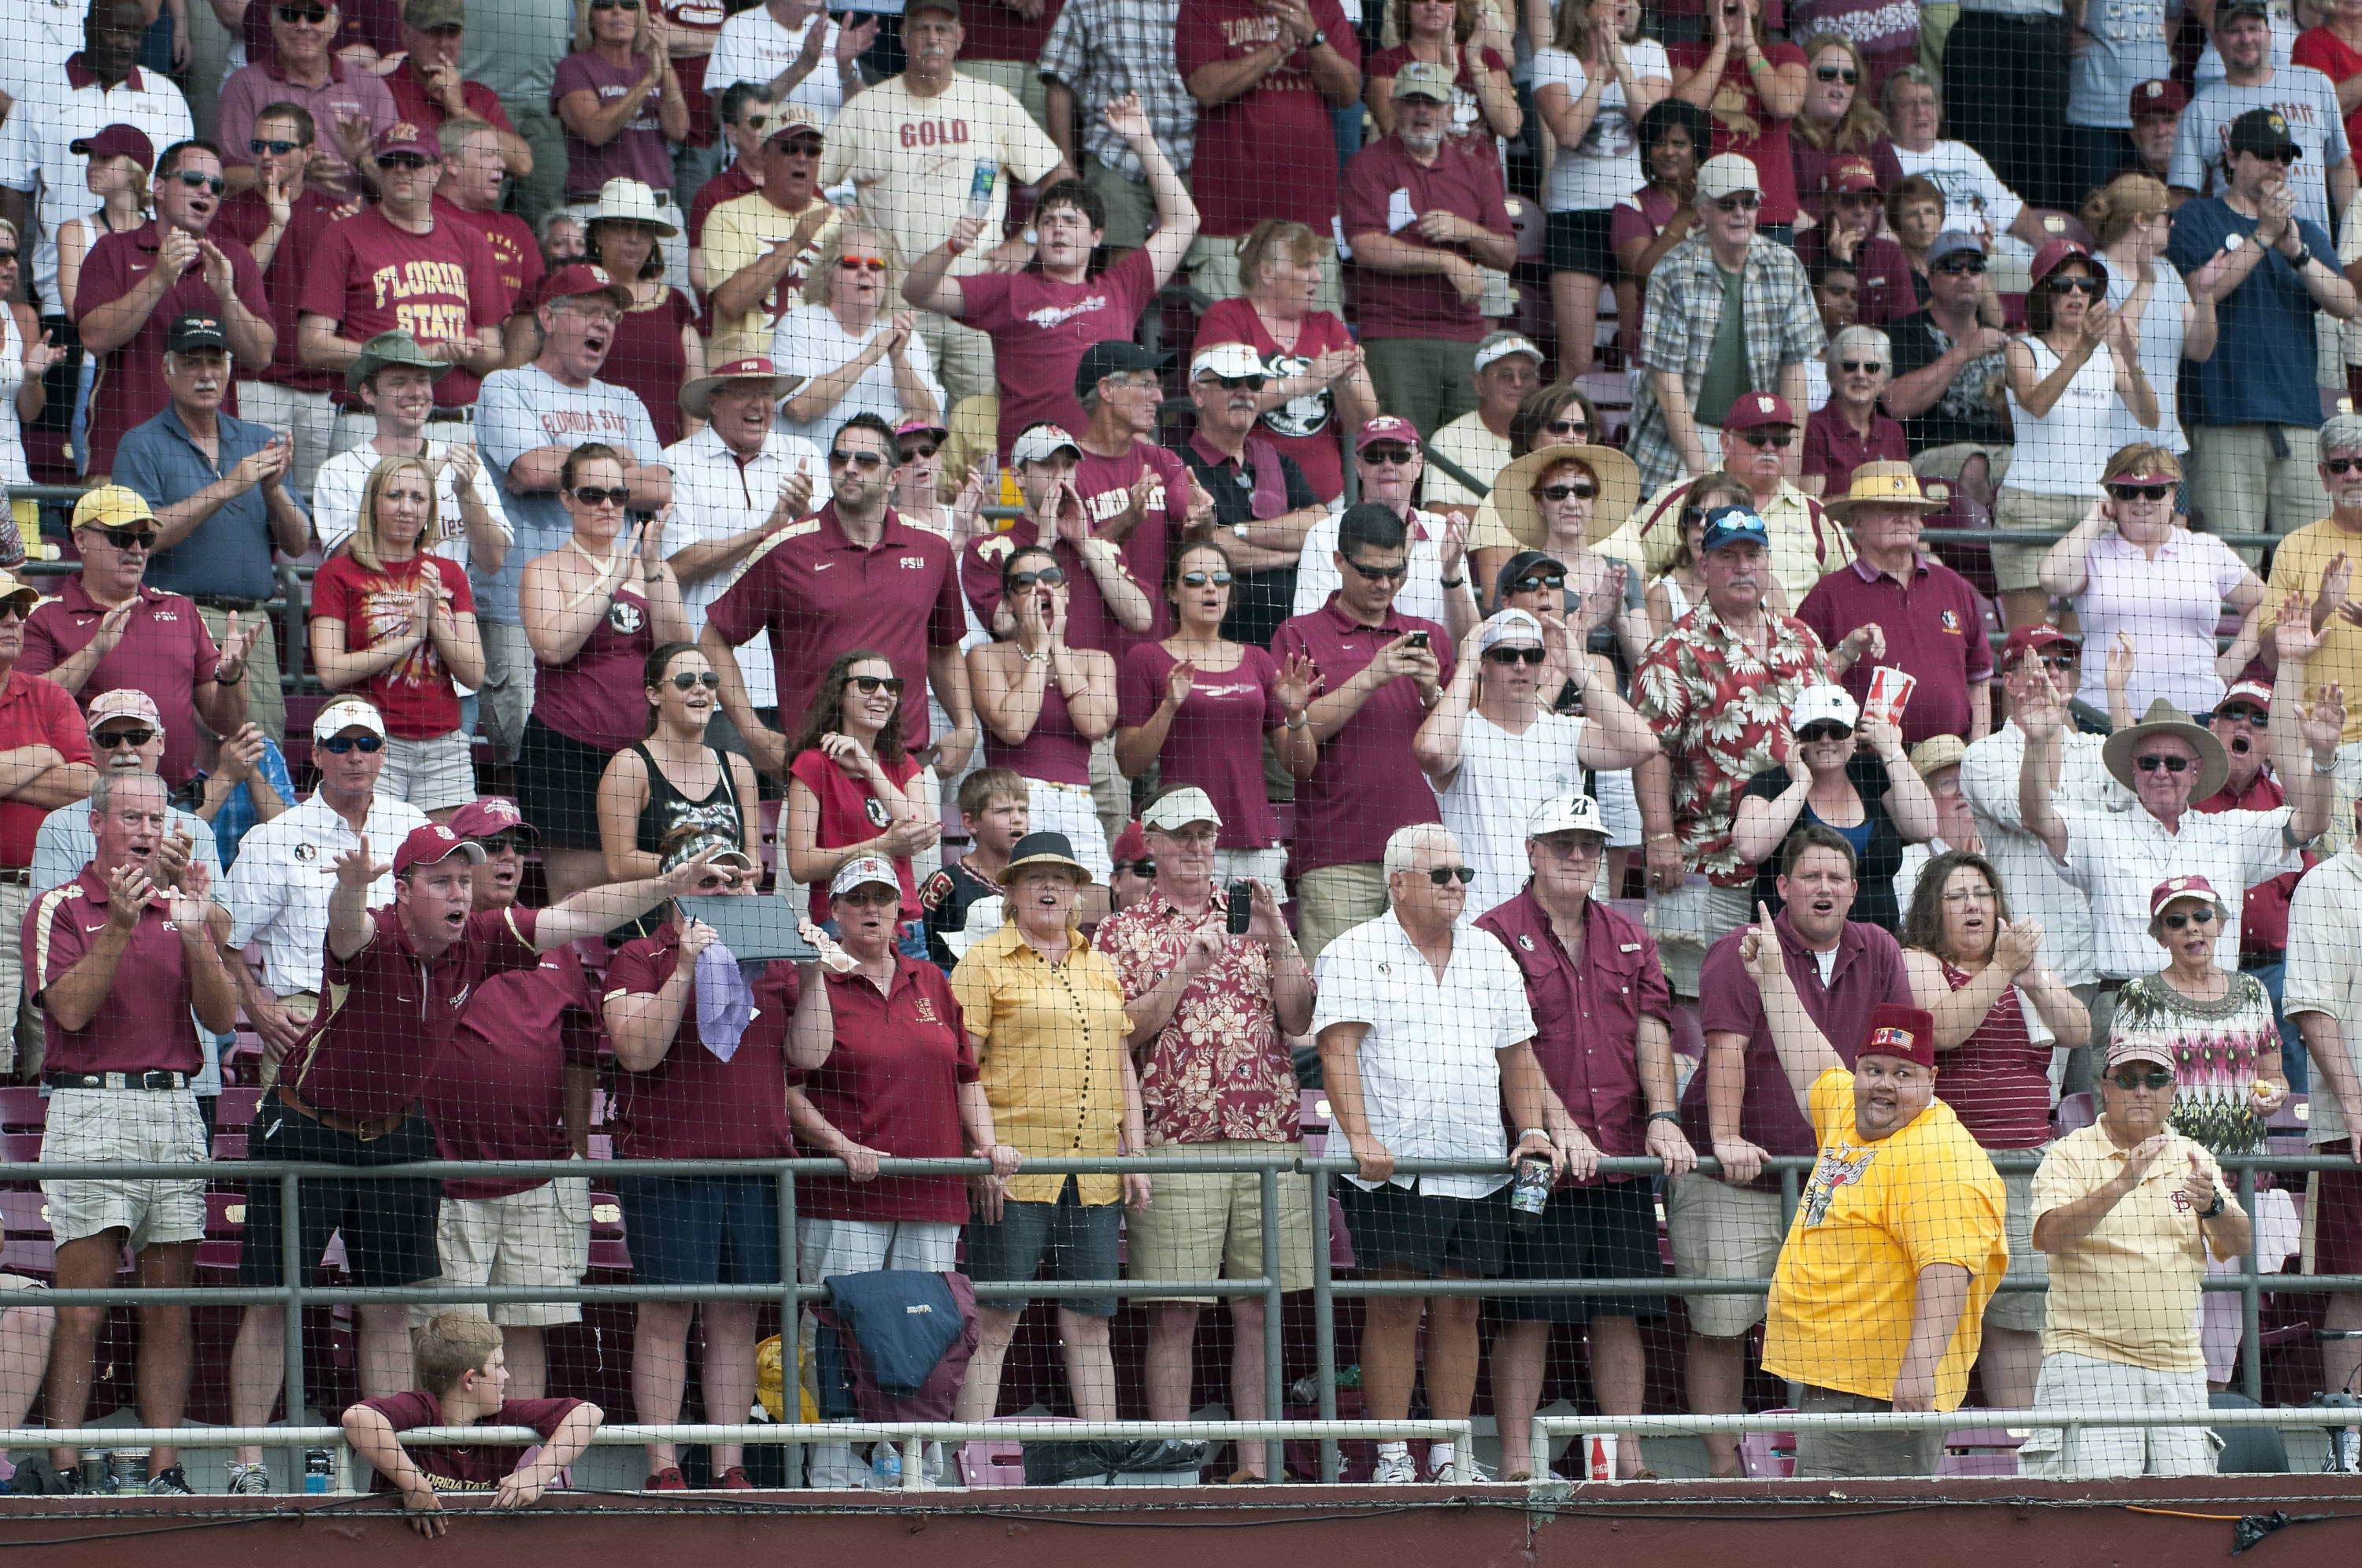 Seminole fans get pumped up by The Animals